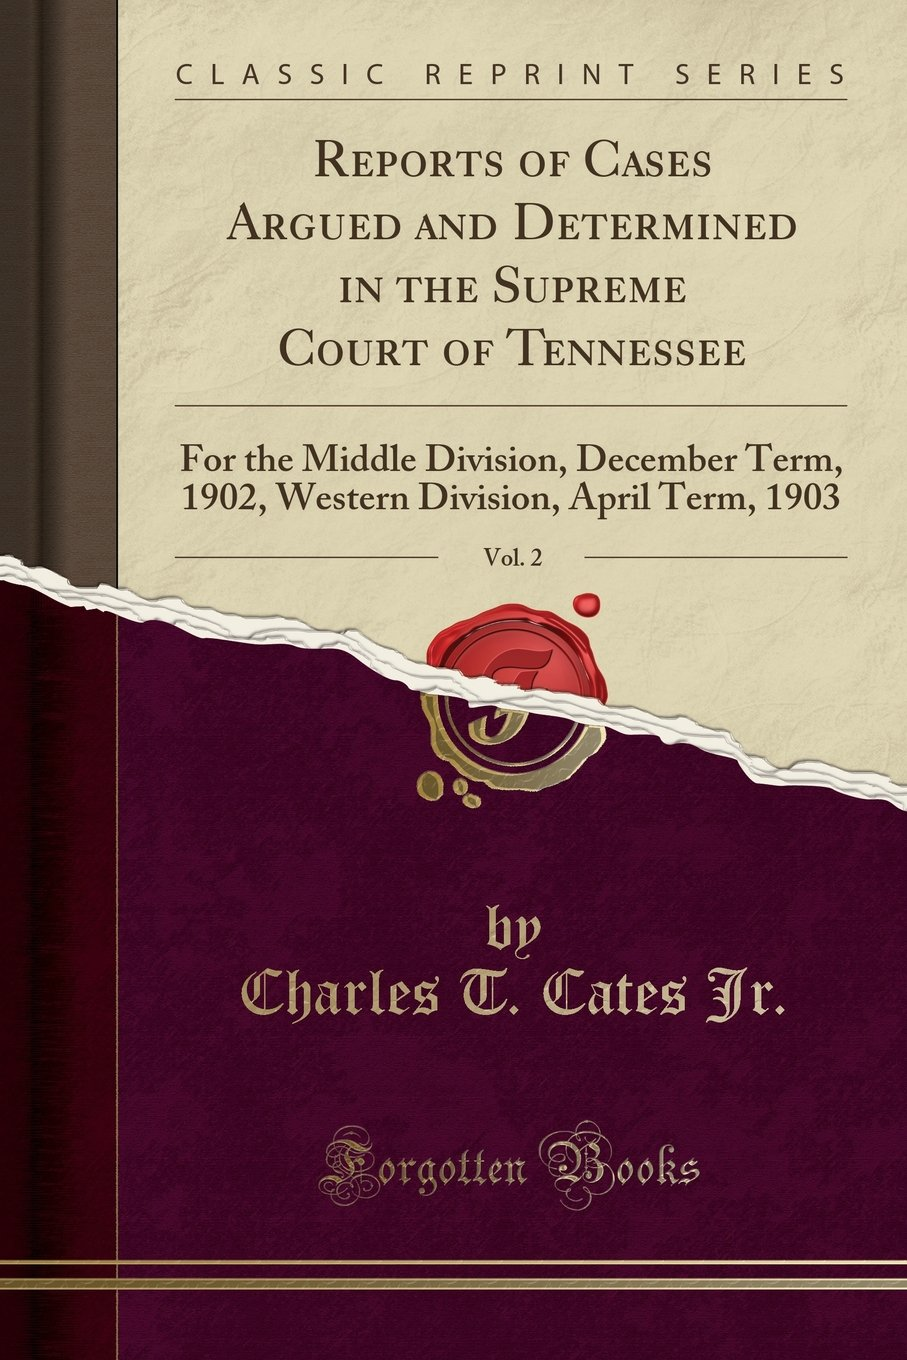 Reports of Cases Argued and Determined in the Supreme Court of Tennessee, Vol. 2: For the Middle Division, December Term, 1902, Western Division, April Term, 1903 (Classic Reprint) PDF